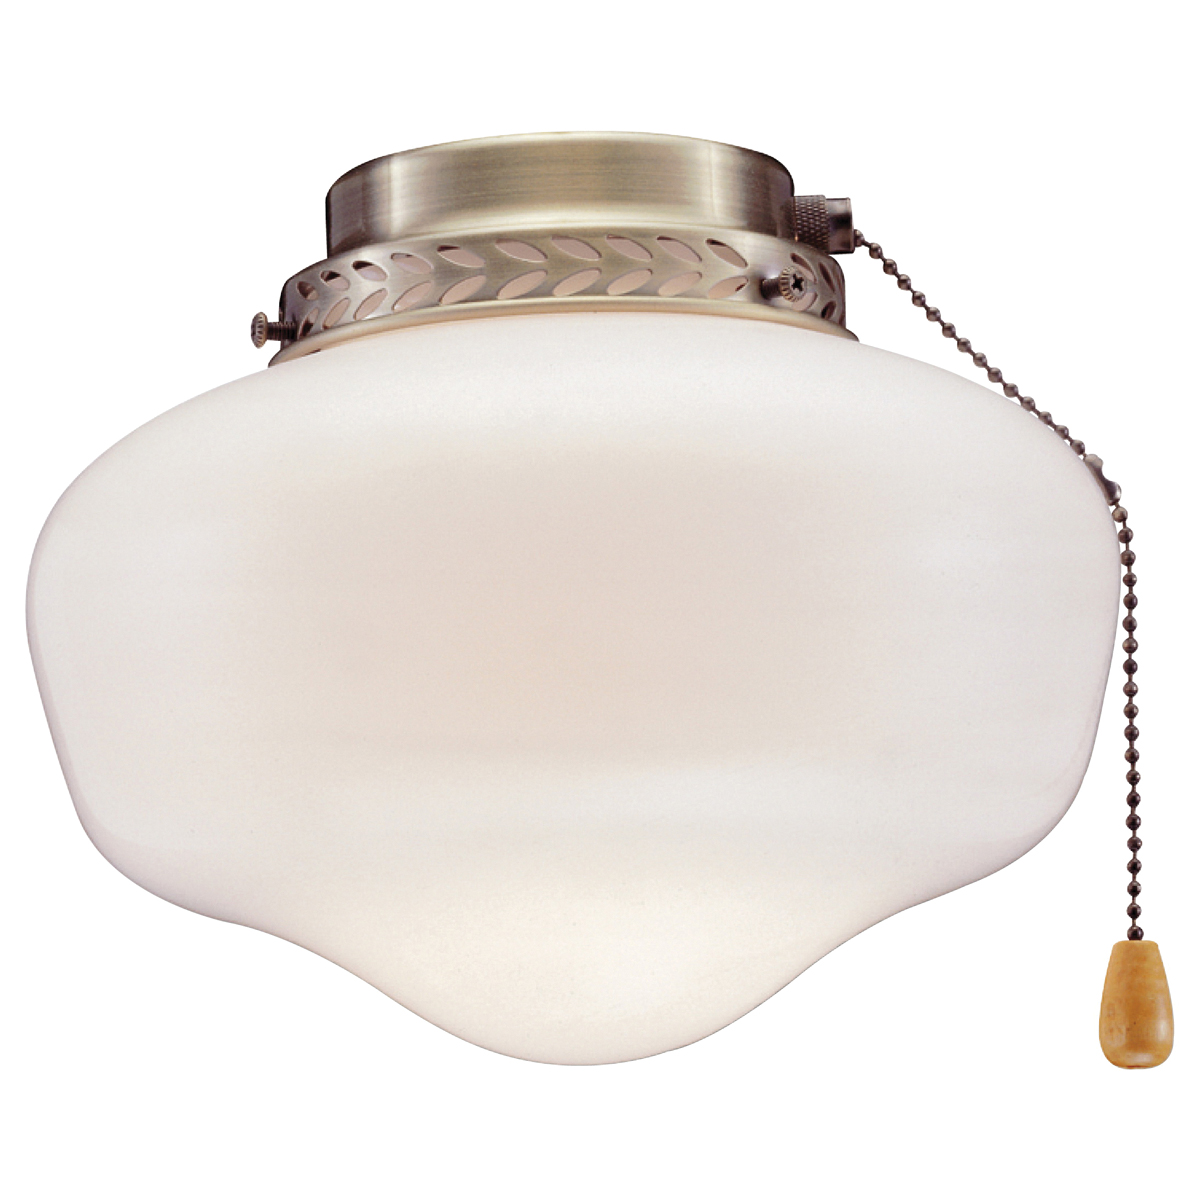 Picture of Boston Harbor CF-9SLK-AB Schoolhouse Light Kit, Opal Glass, Antique Brass, Antique Brass, Color Box